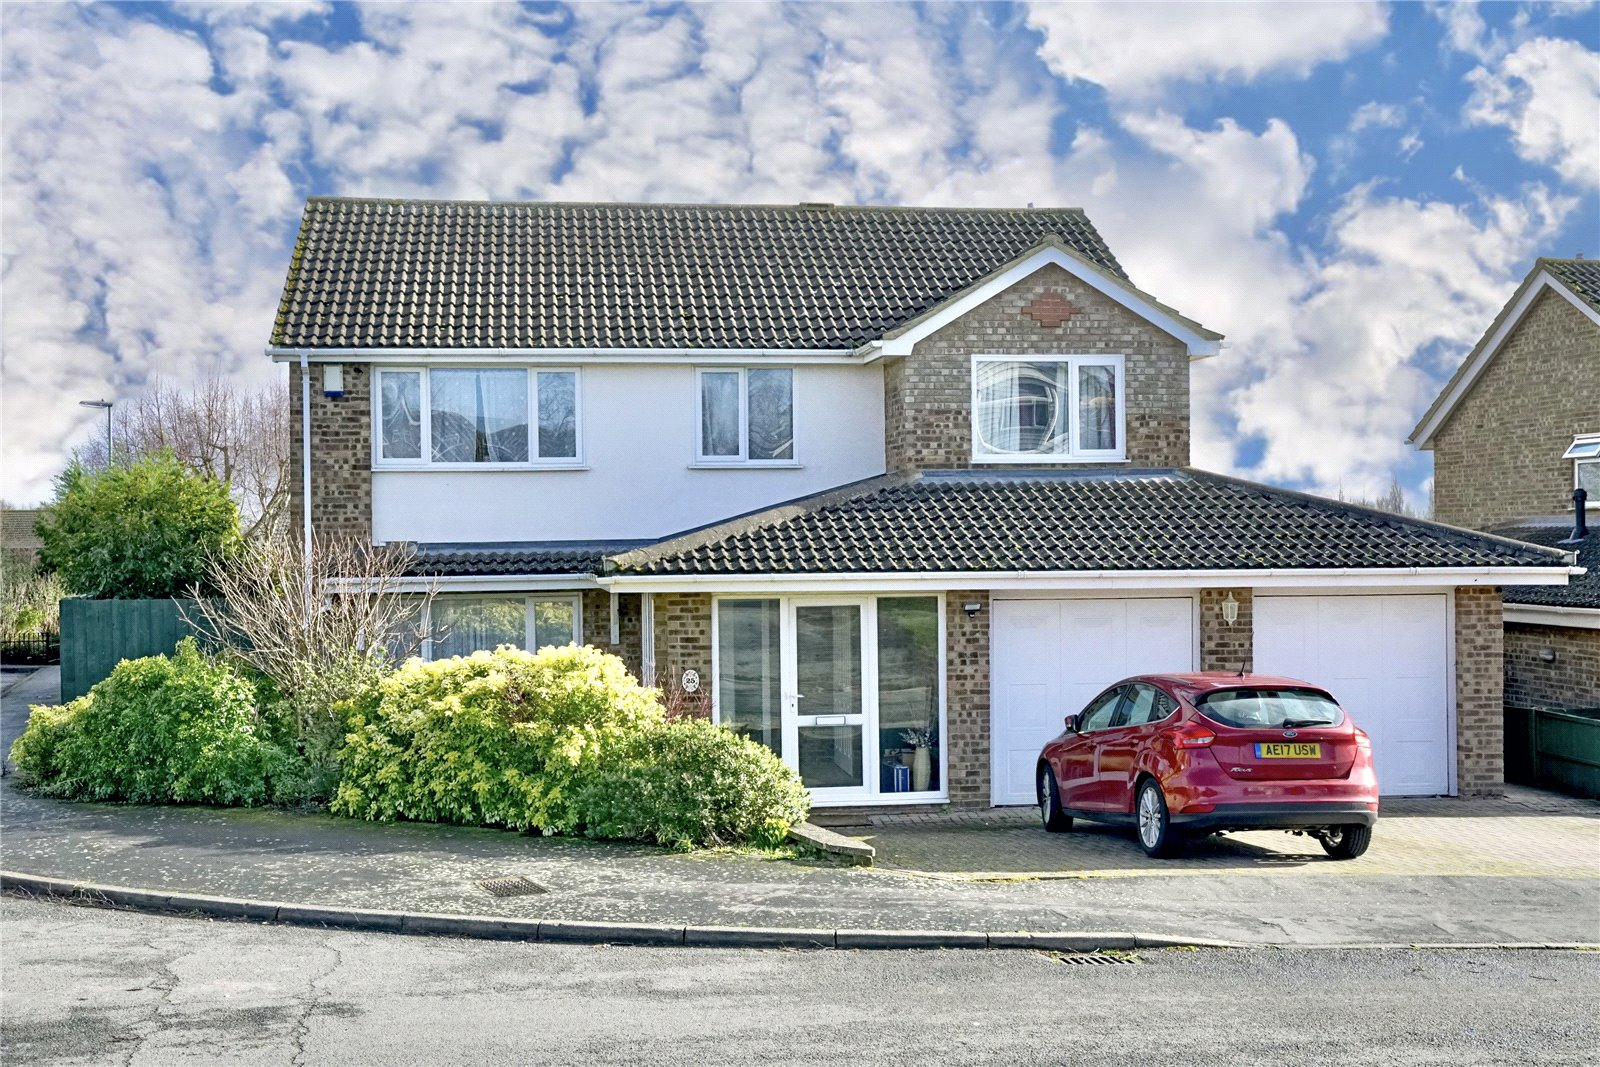 4 bed house for sale in Lowry Road, Eaton Ford 1